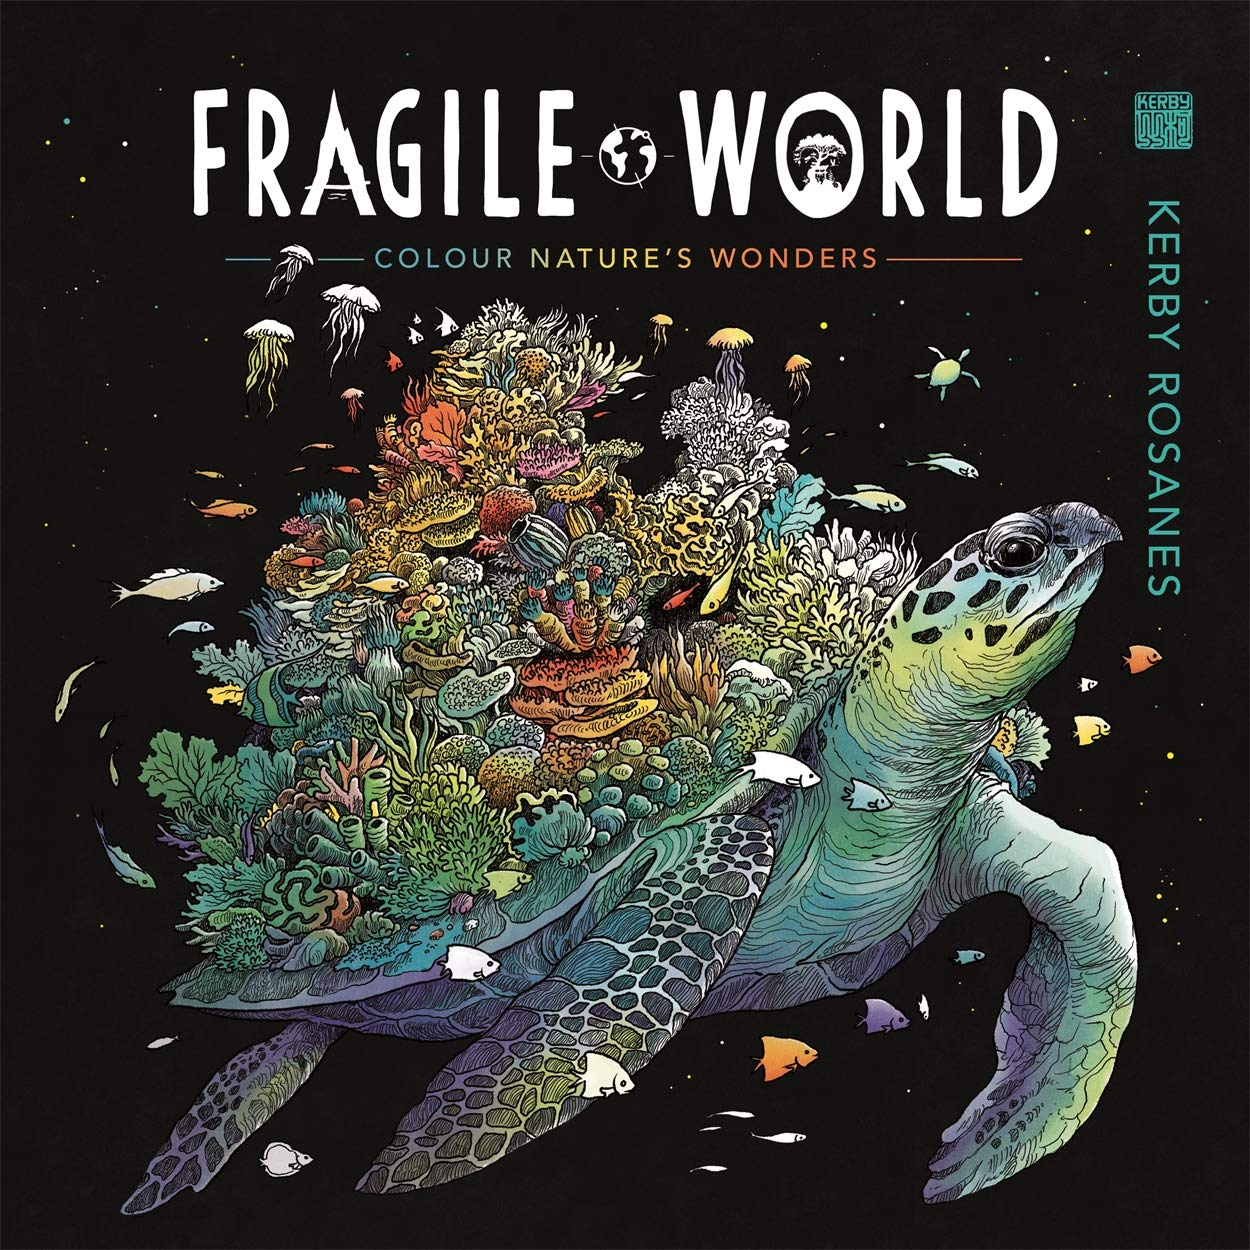 Fragile World: Colour Nature's Wonders (Colouring Books) 50% OFF £5 @ Amazon